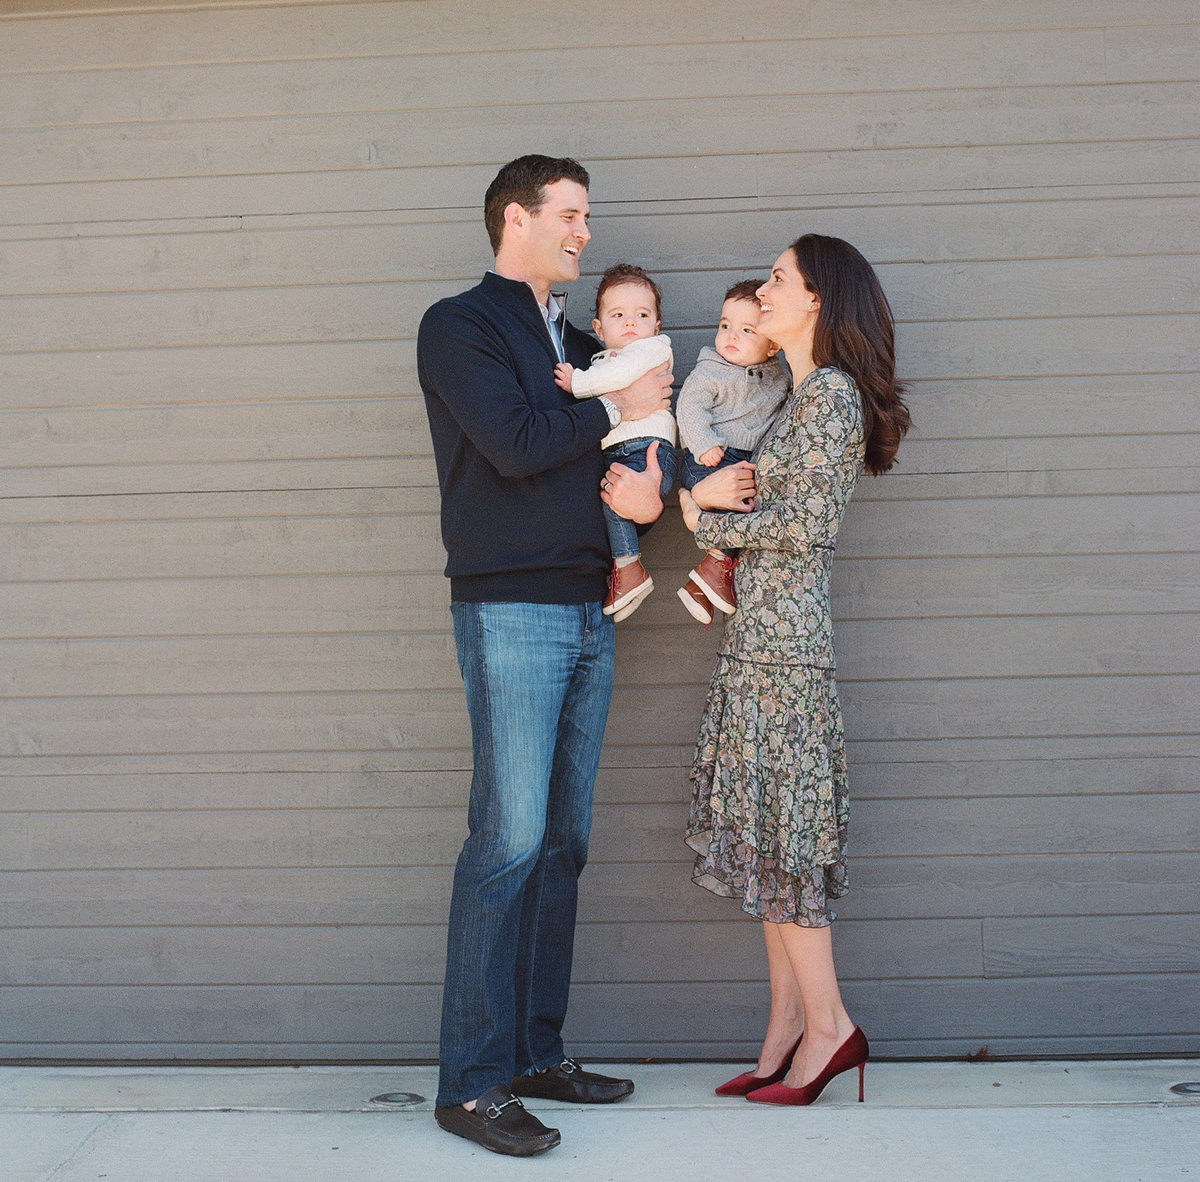 Dallas family portrait photography